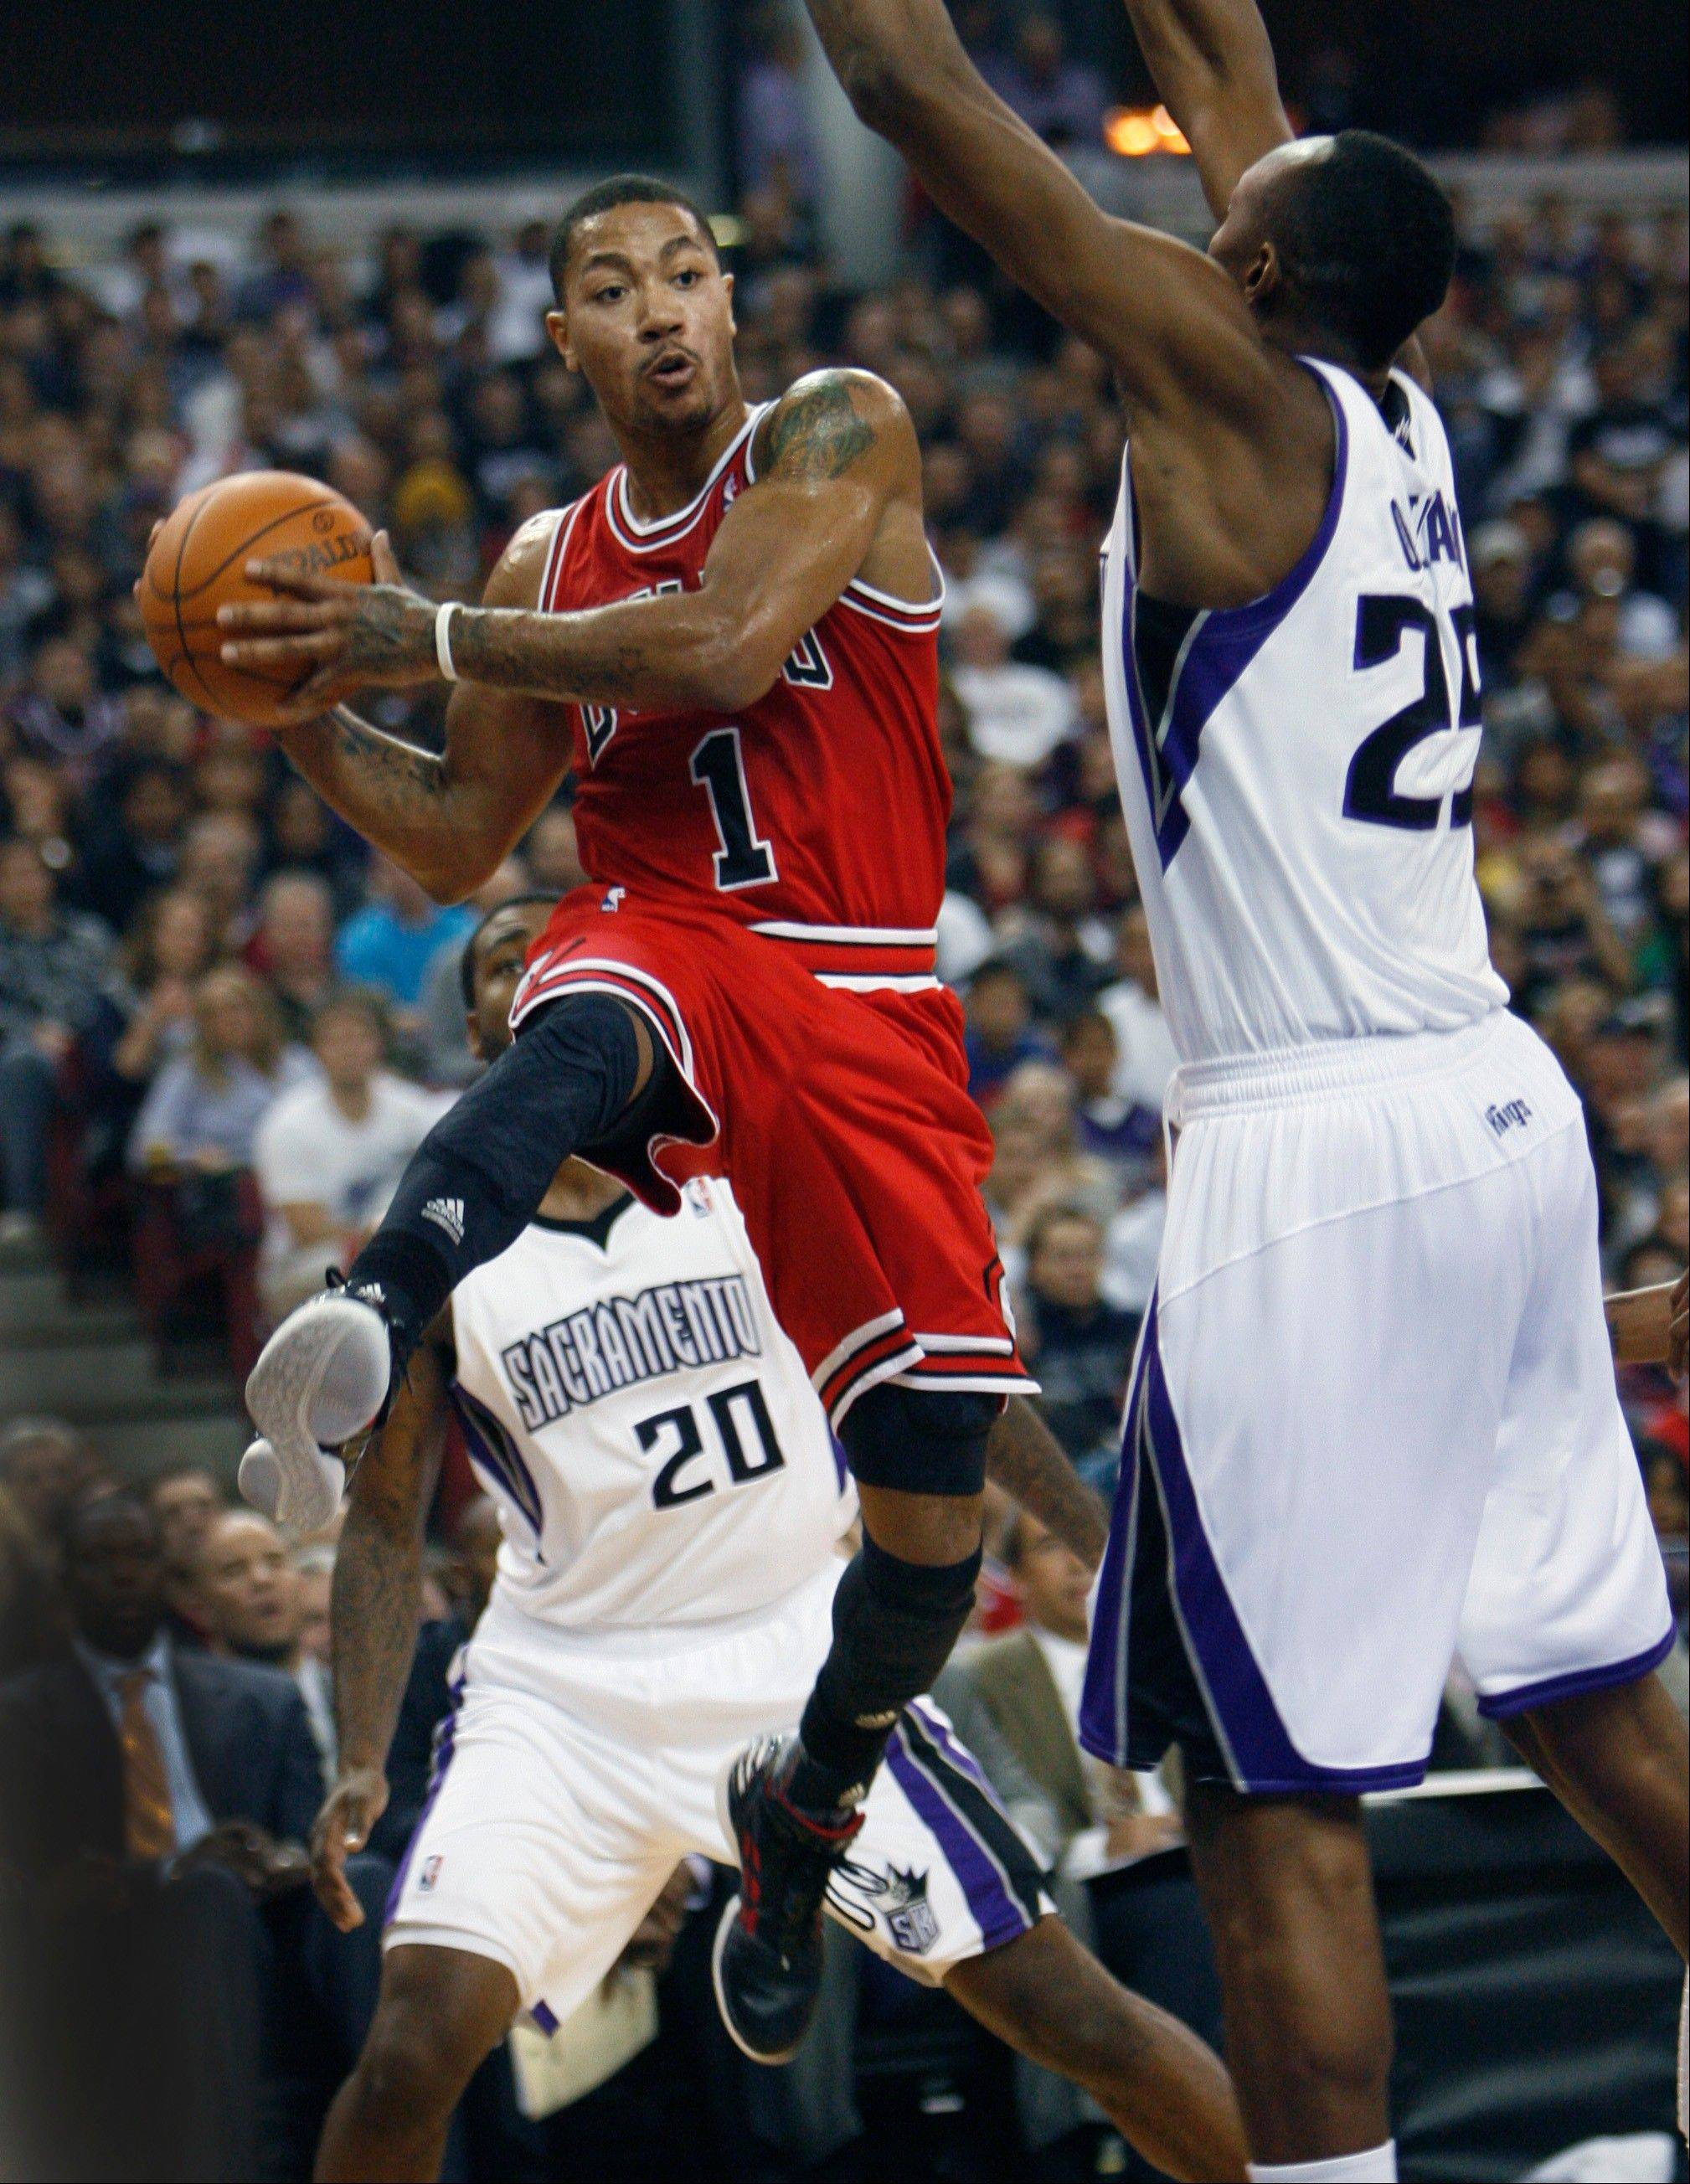 Chicago Bulls guard Derrick Rose is one of five Bulls on this year's NBA all-star ballot for the Feb. 26 game in Orlando. Voting is already under way at nba.com and through text and SMS services.